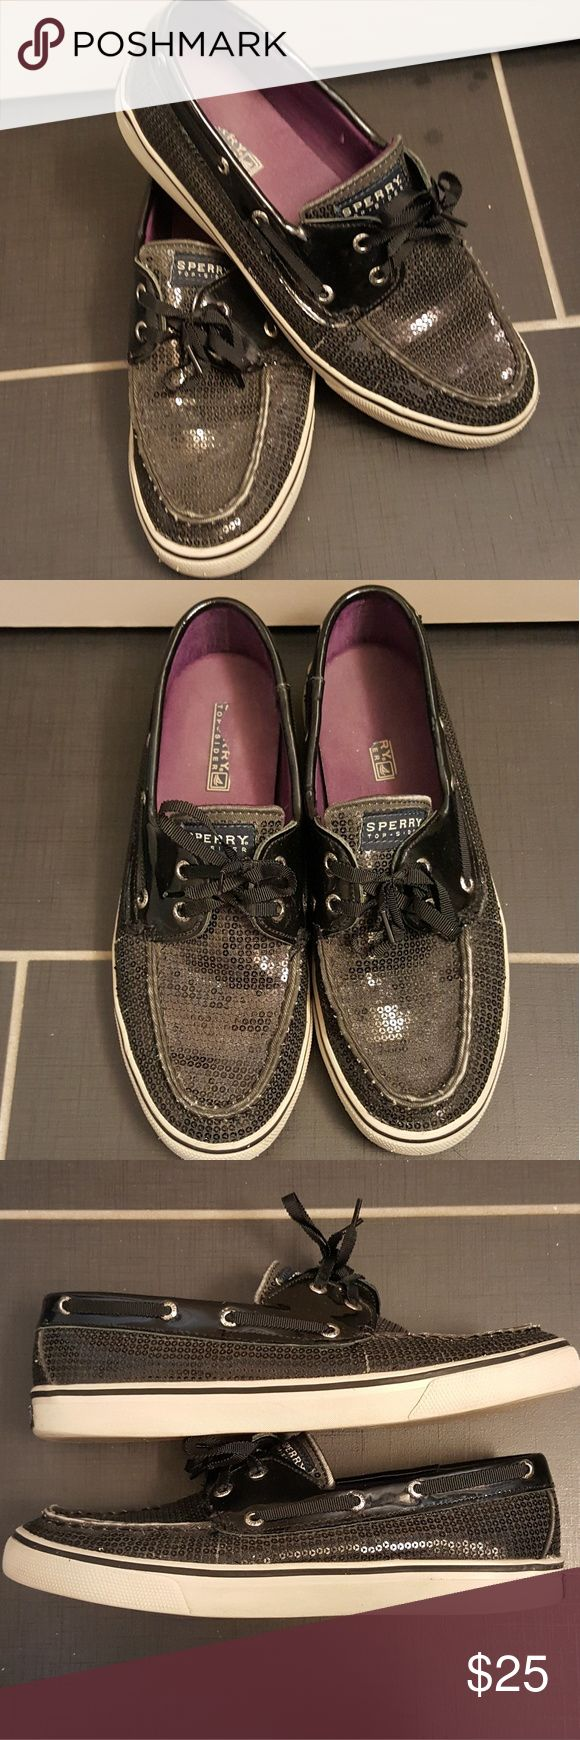 Sperry Top-sider navy blue sequin shoes Sperry Top-sider navy blue (almost black) sequin shoes with purple insoles in womens size 8.5 gently used and cleaned in great condition No stains No missing sequins No tears. NO TRADES Sperry Top-Sider Shoes Flats & Loafers